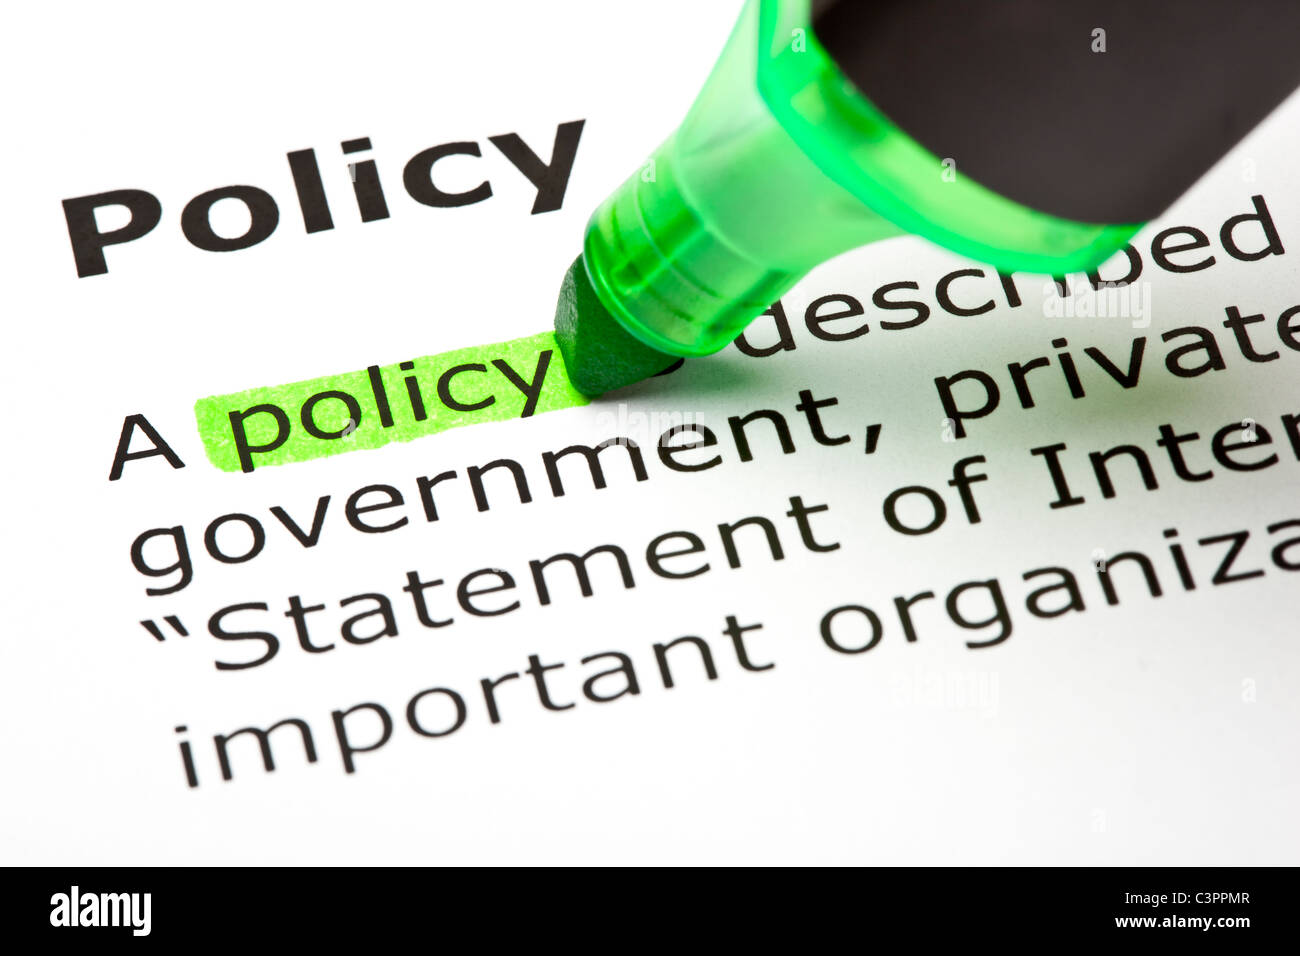 The word 'Policy' highlighted in green - Stock Image